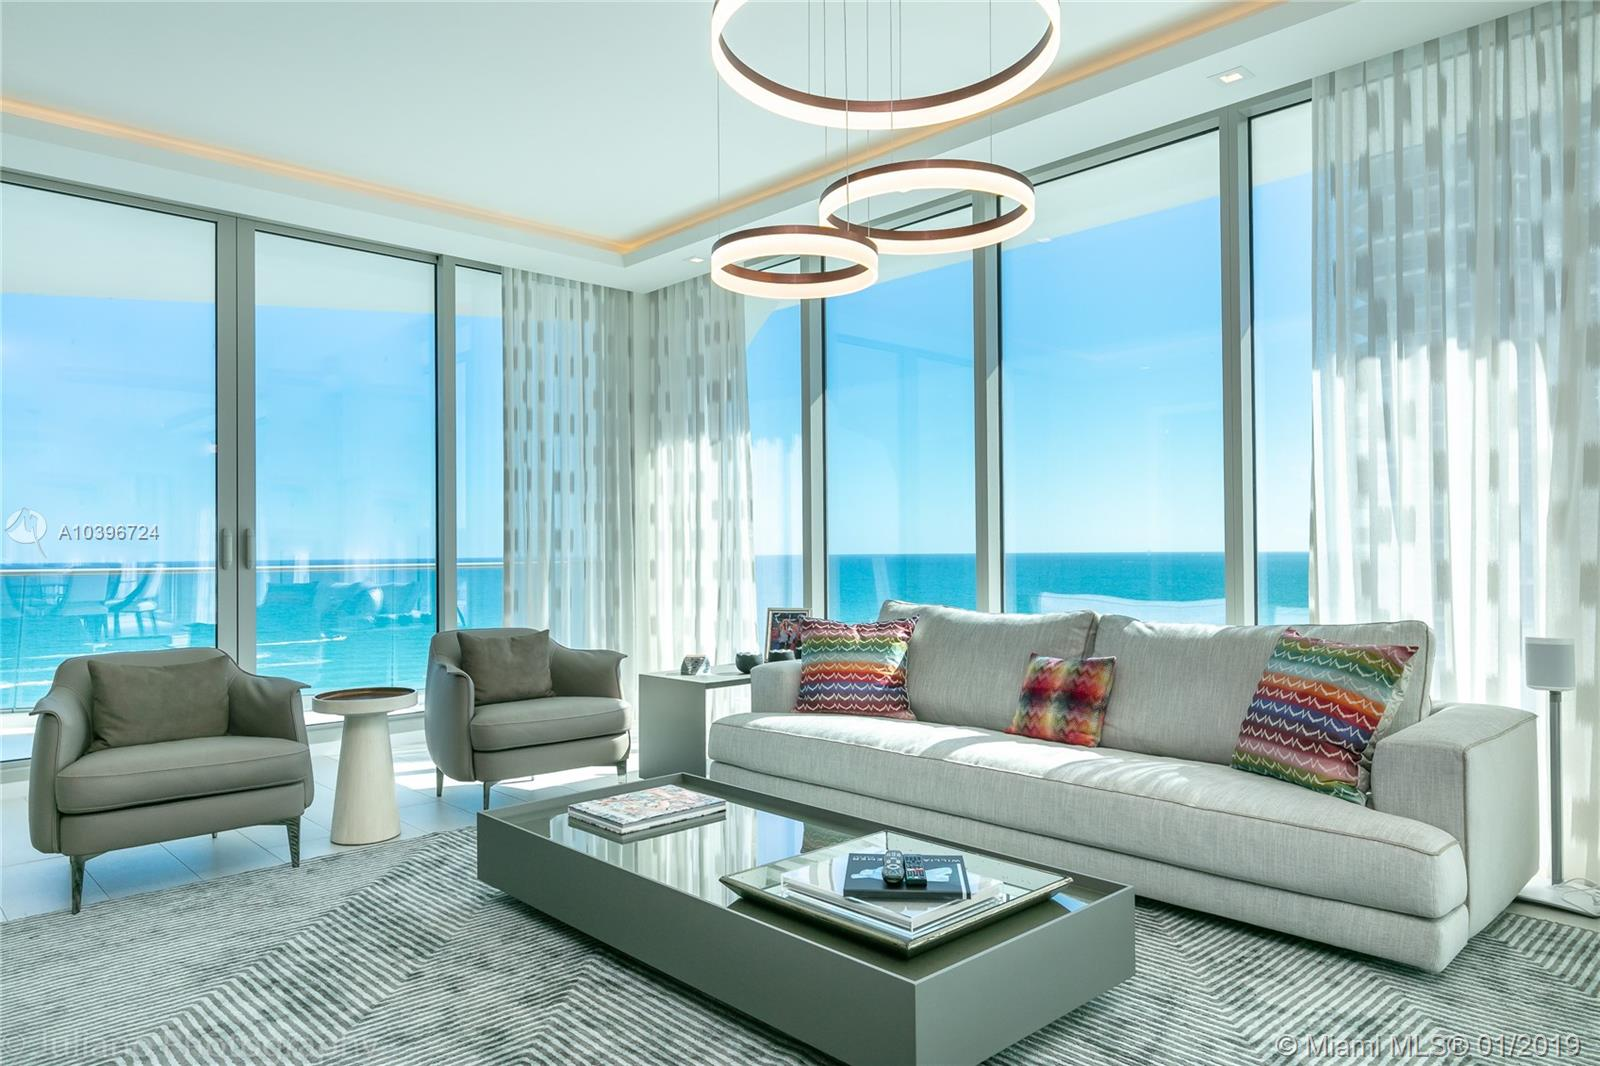 16901 Collins Avenue # 1501, Sunny Isles Beach, Florida 33160, 4 Bedrooms Bedrooms, ,6 BathroomsBathrooms,Residential,For Sale,16901 Collins Avenue # 1501,A10396724